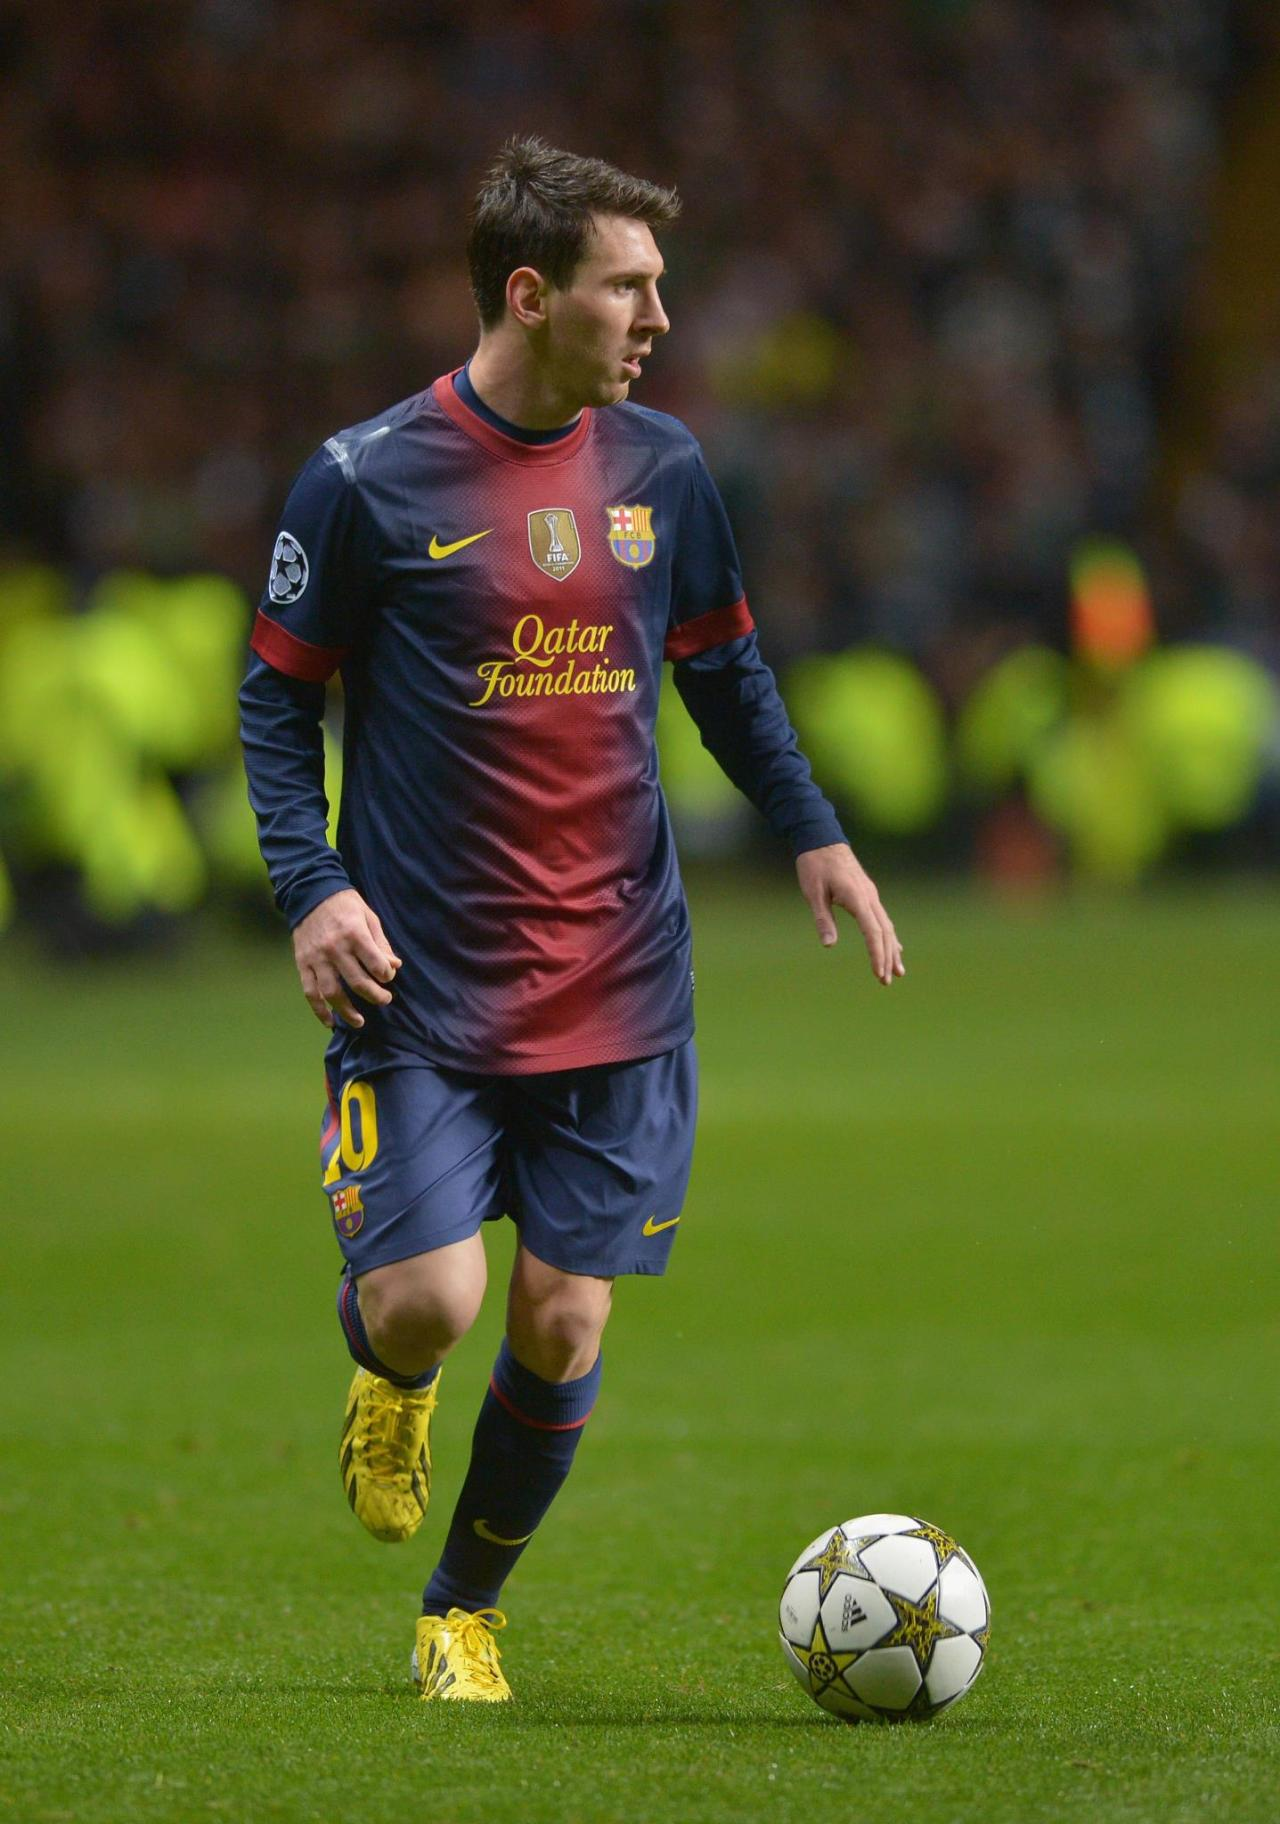 Lionel Messi. - Page 6 Tumblr_mseee5T6gg1syb52go1_1280